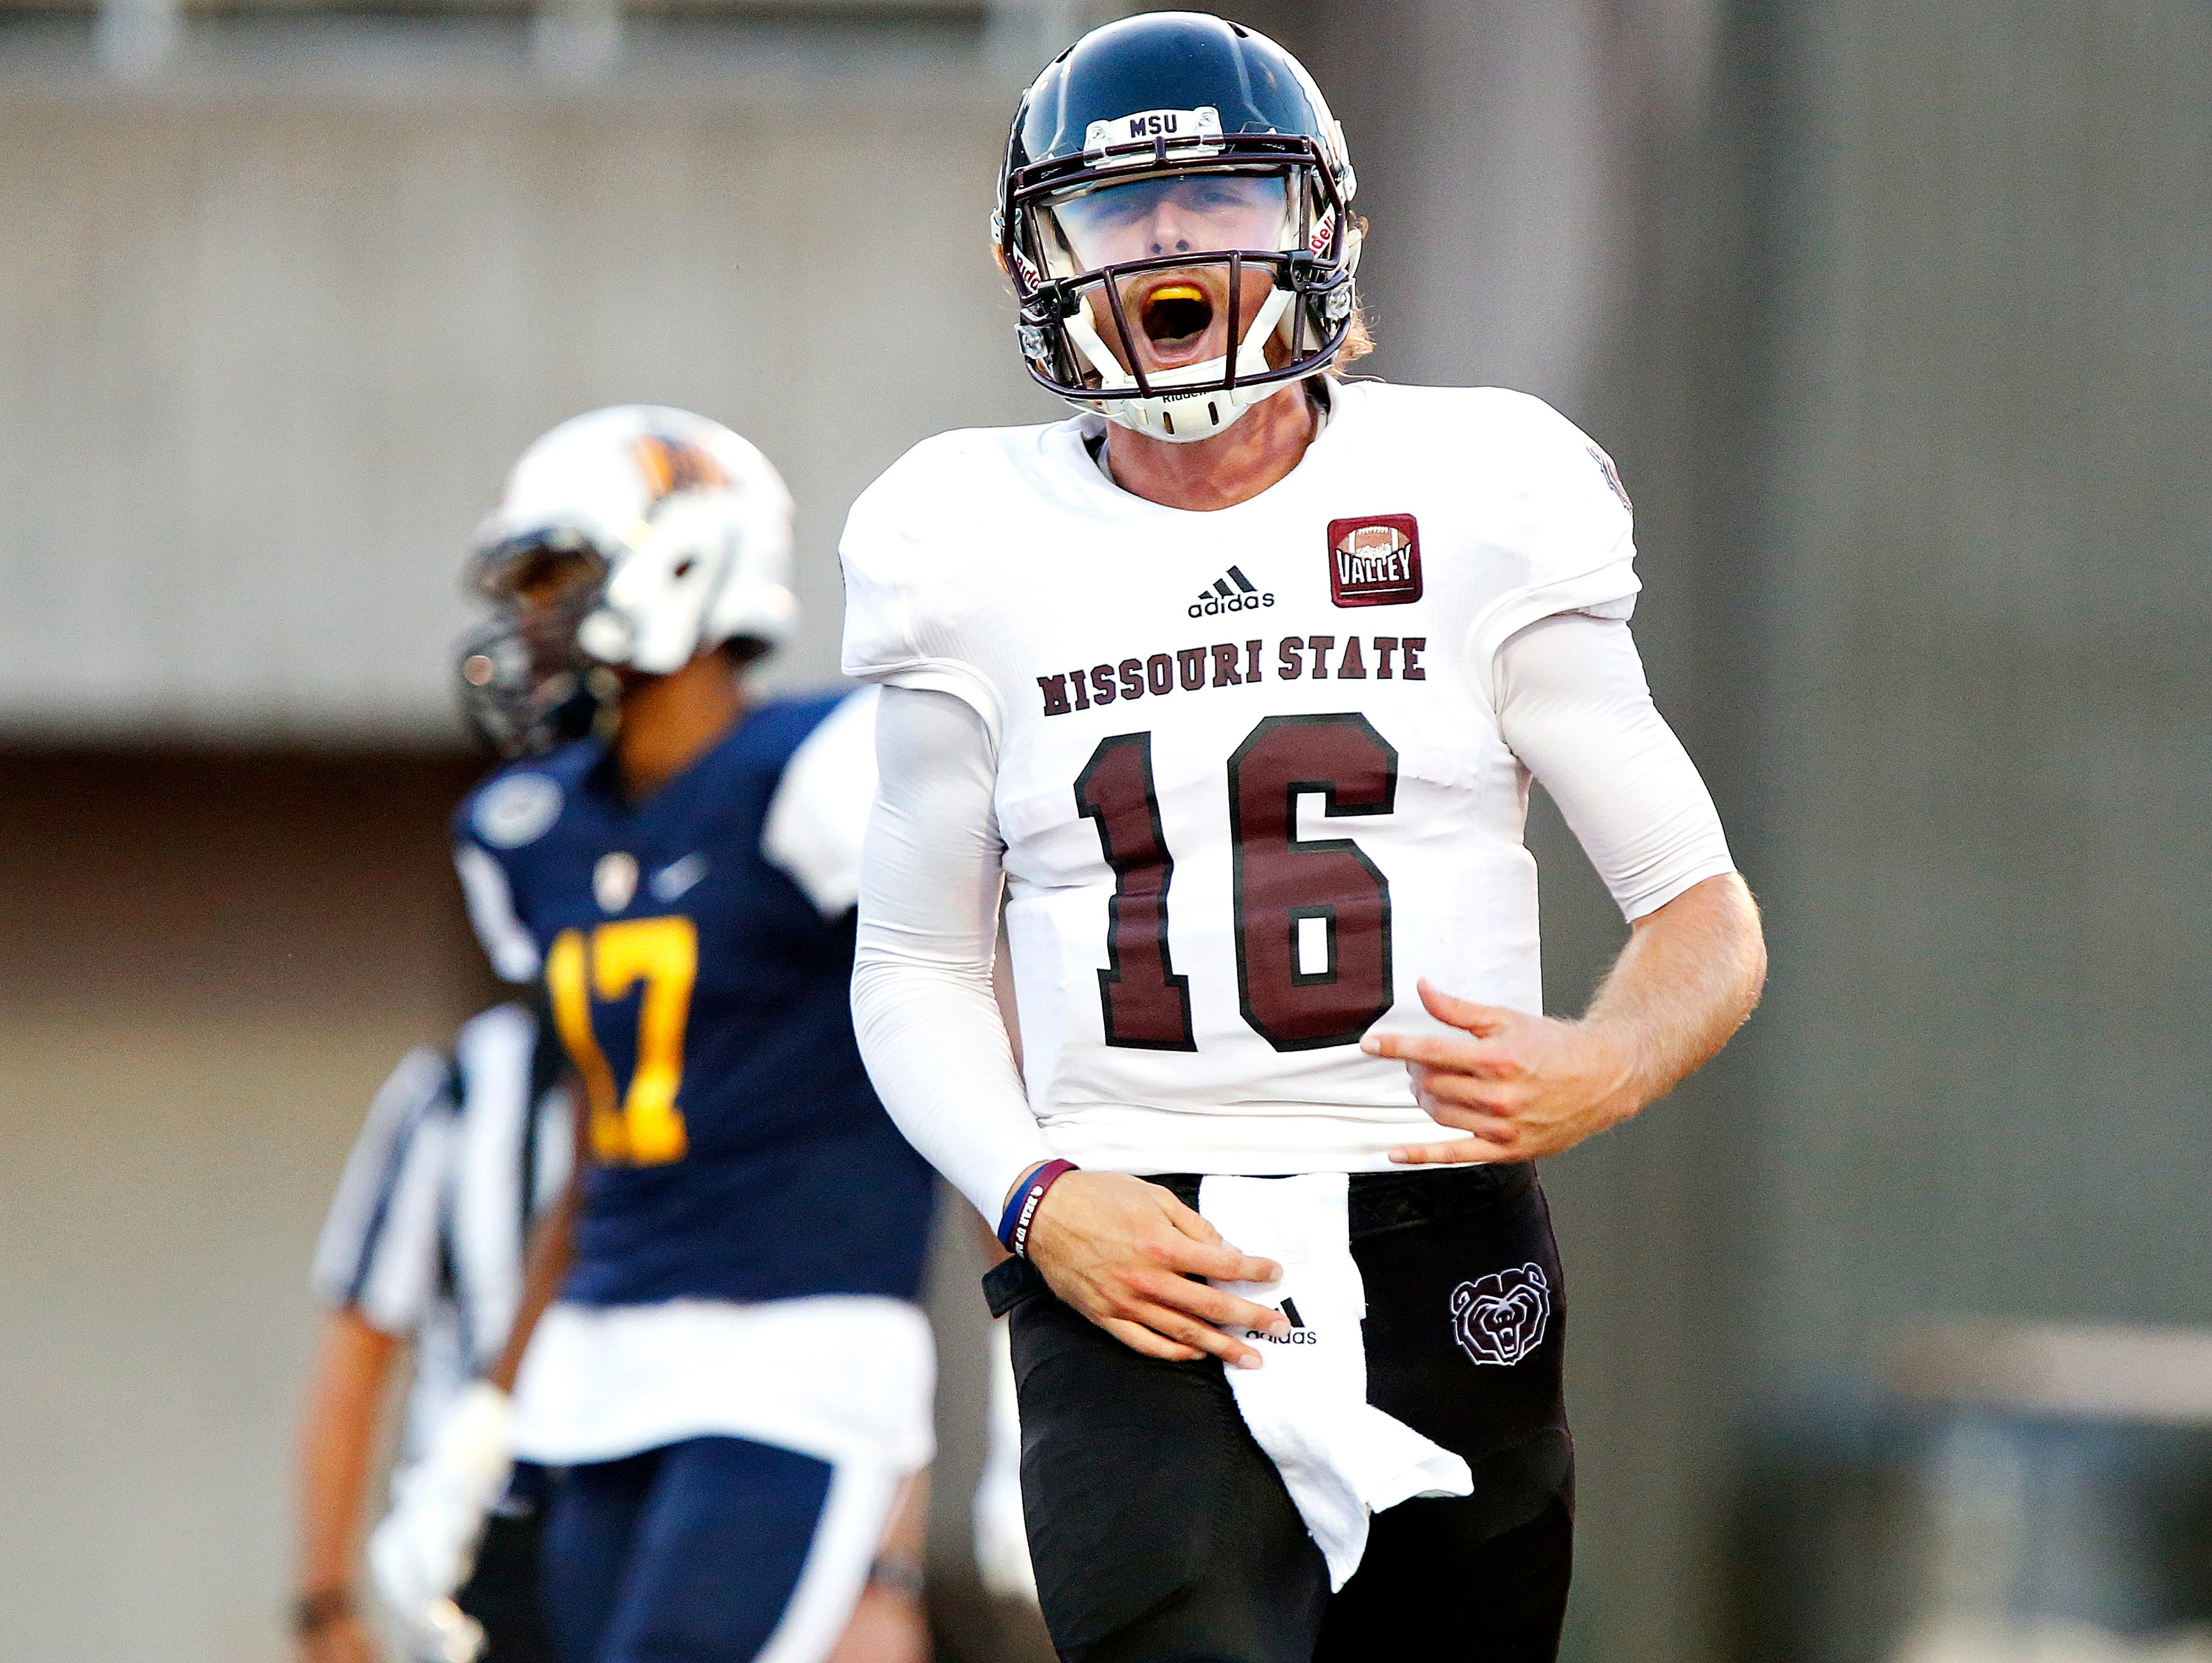 Breck Ruddick will be eligible to return to game action for the Missouri State football team in 2017.